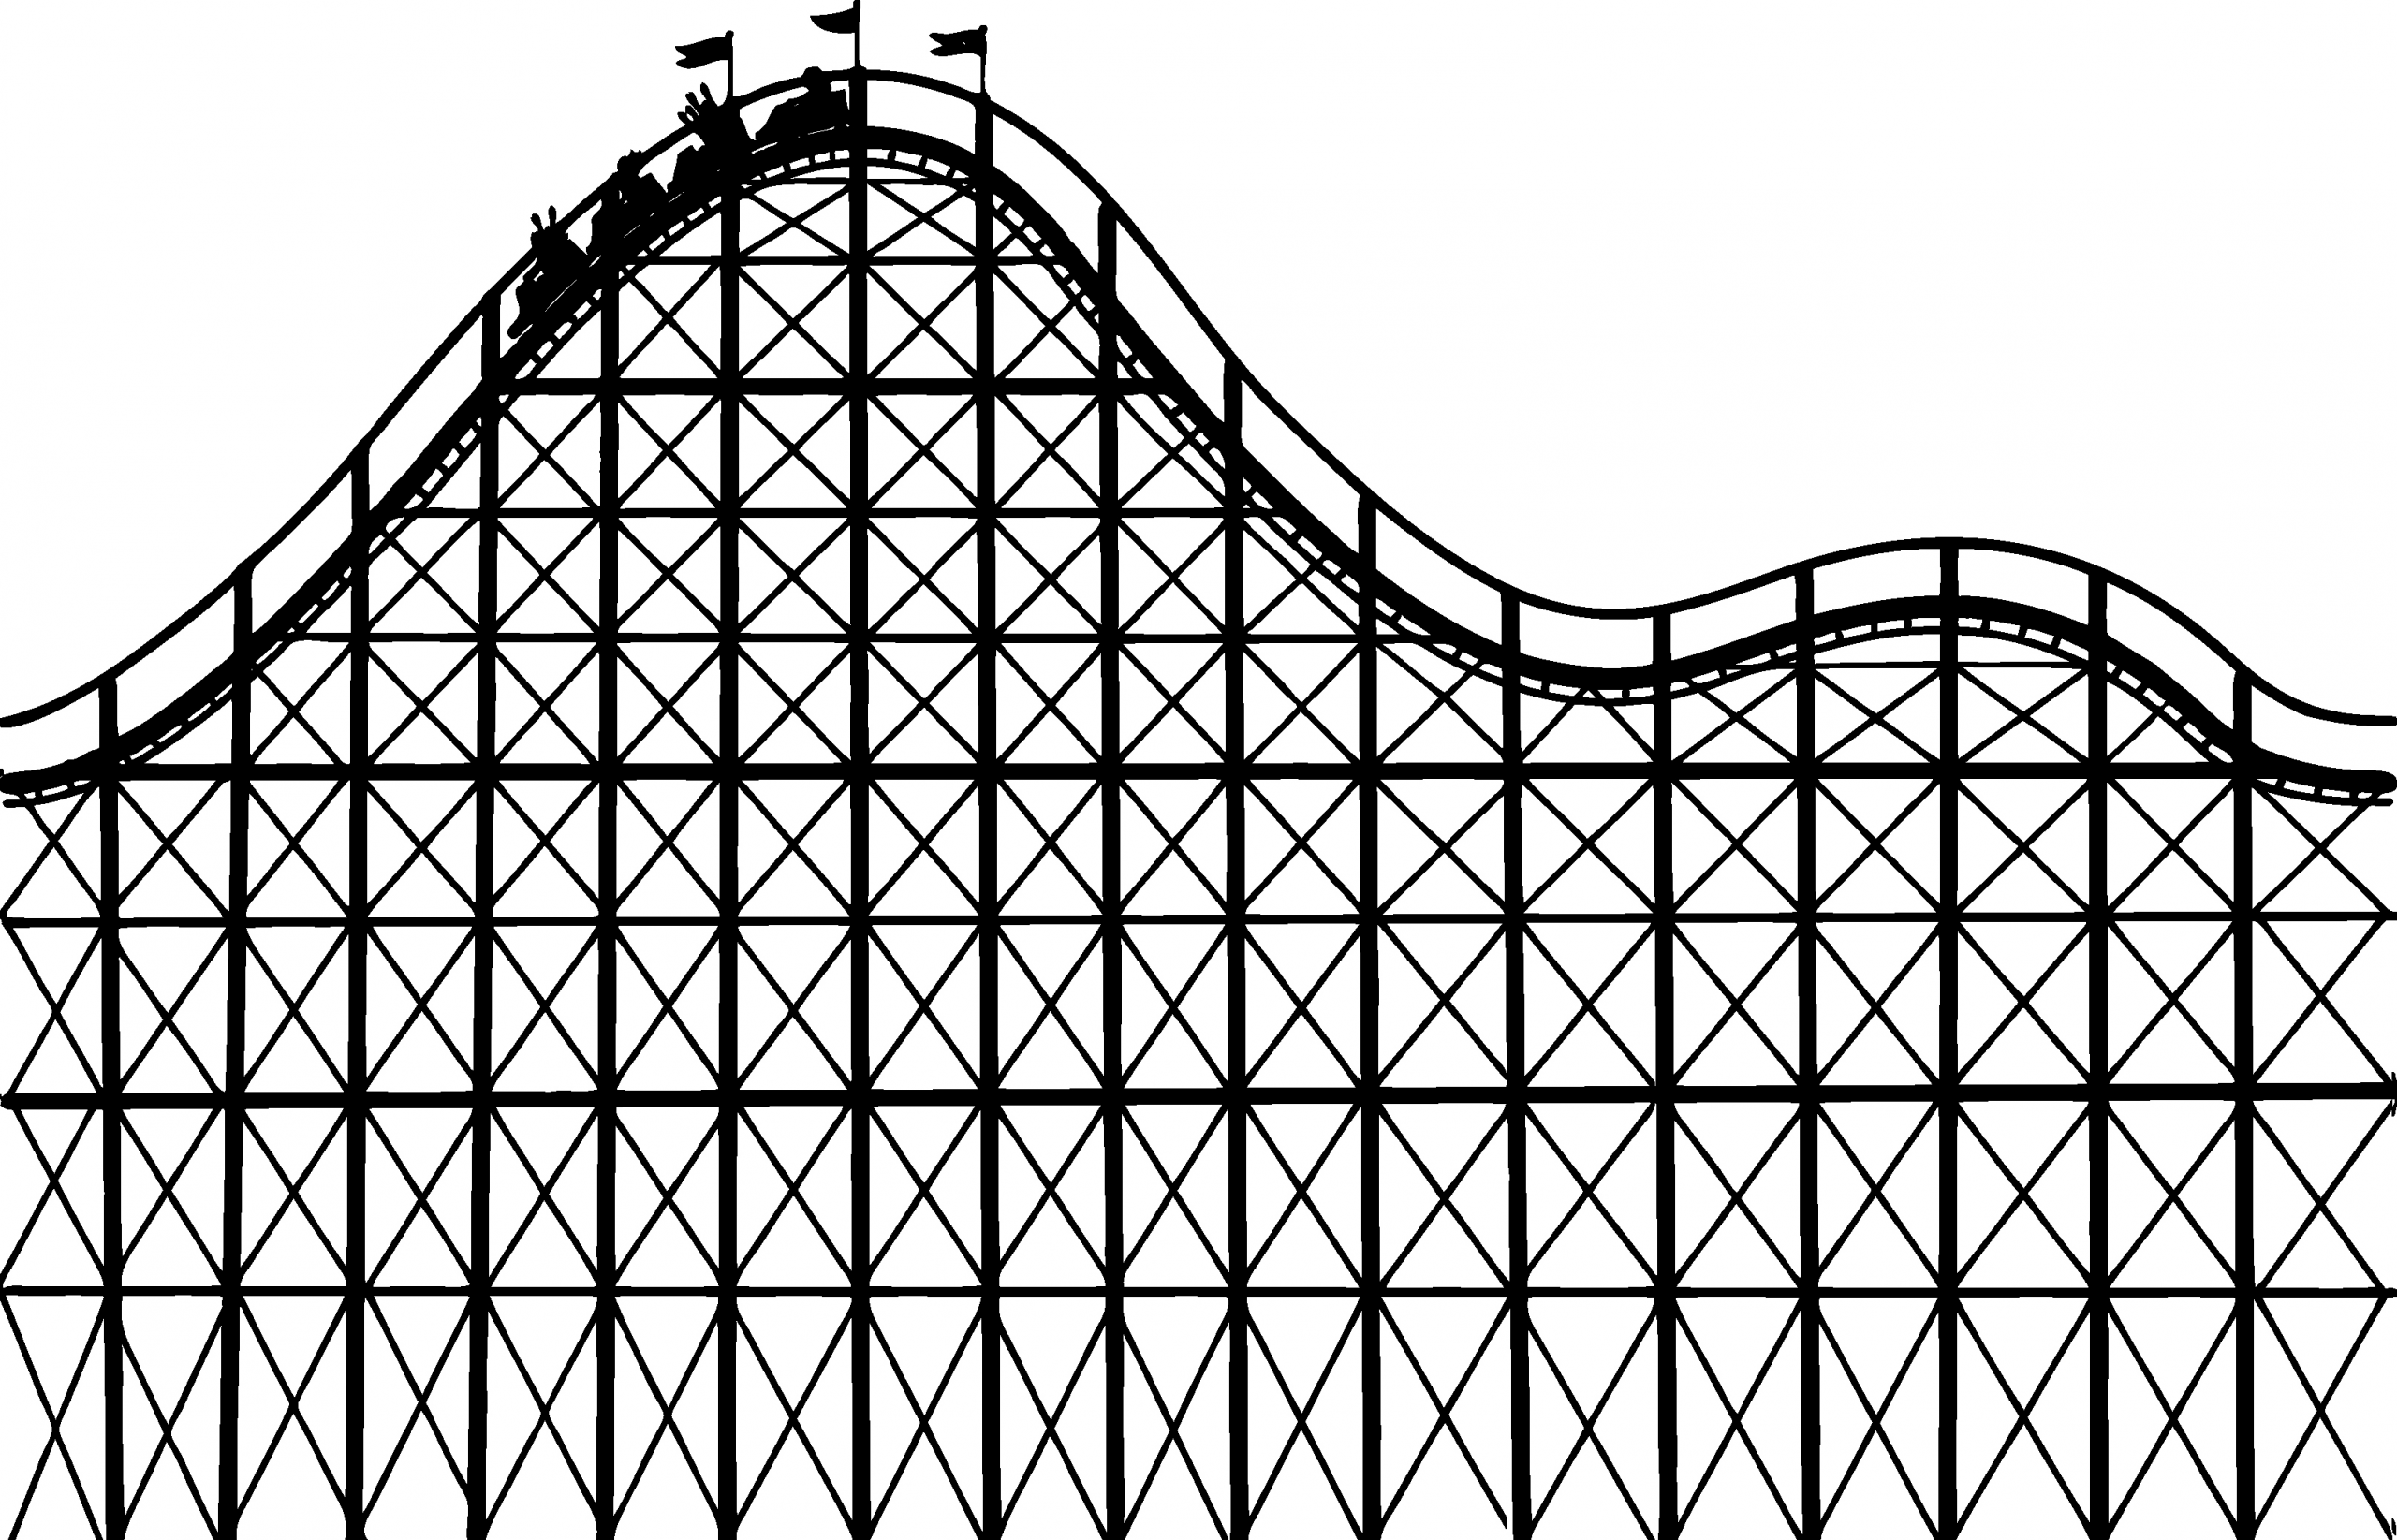 Roller Coaster Coloring Page Fresh Rollercoaster Free Coloring Pages Roller Coaster Roller Coaster Drawing Amusement Park